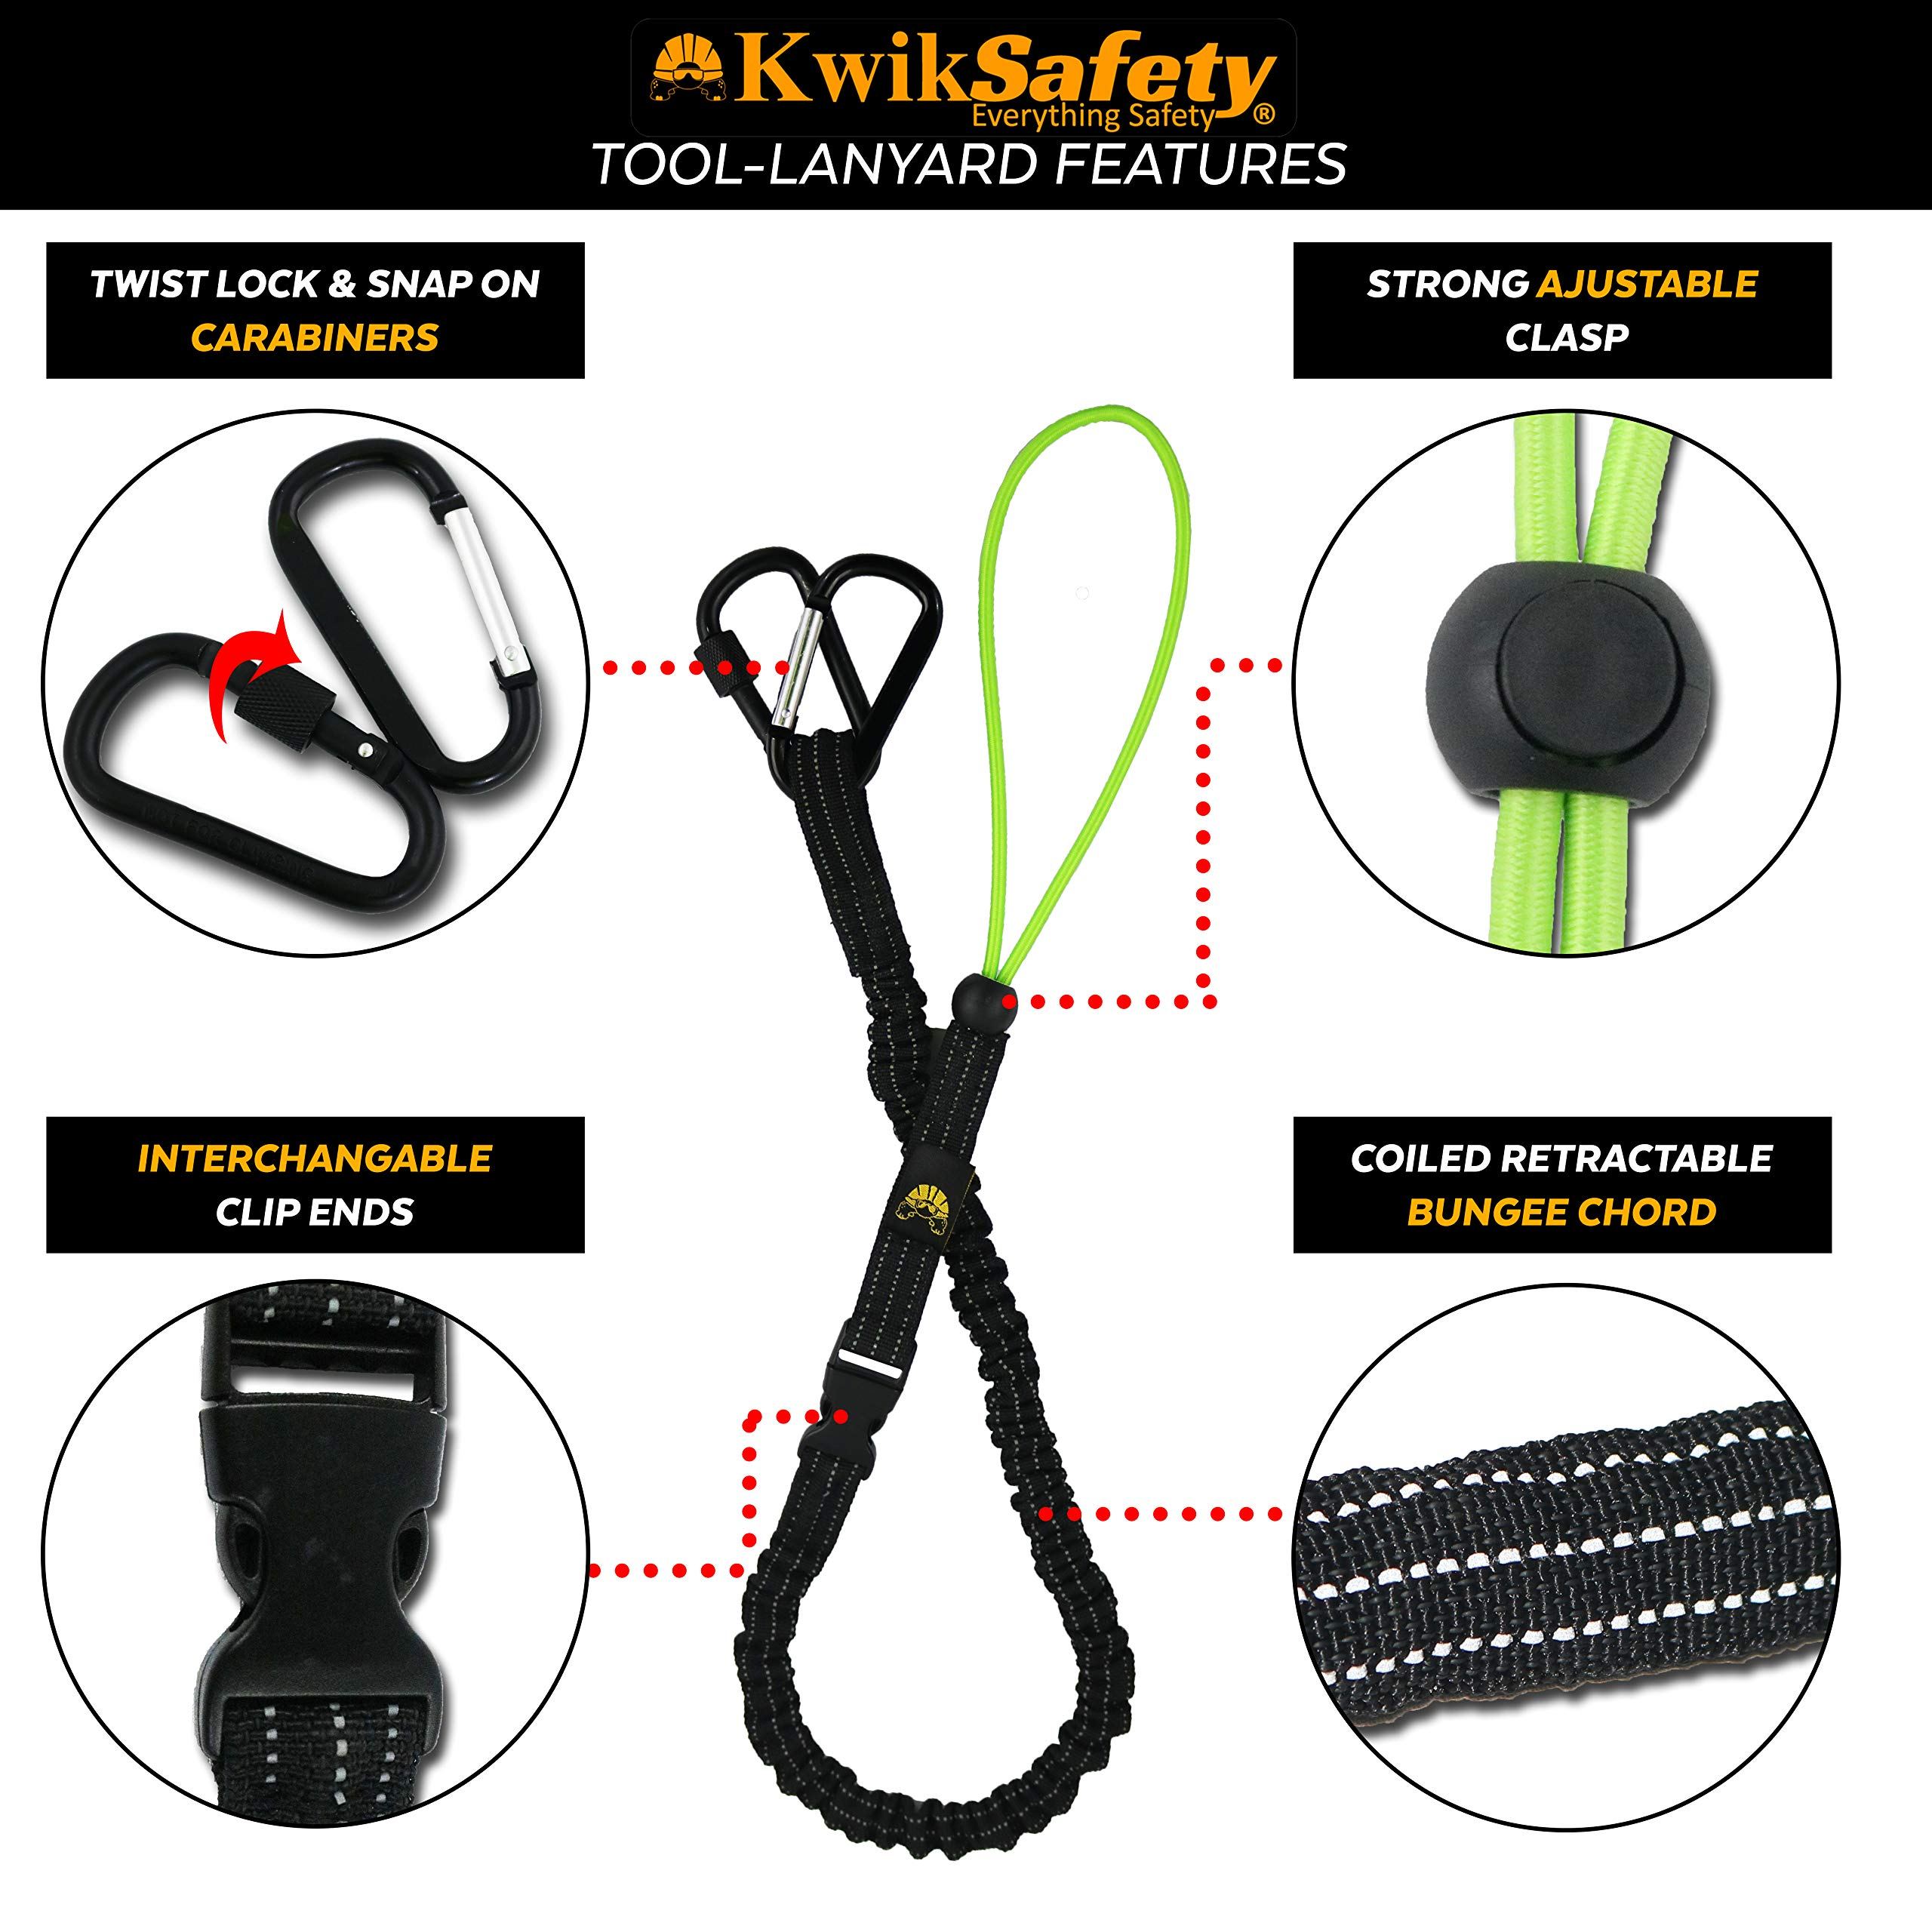 KwikSafety (Charlotte, NC) THUNDER KIT | 3D Full Body Safety Harness, 6' Lanyard, Tool Lanyard, 3' Cross Arm Strap Anchor ANSI OSHA PPE Fall Protection Arrest Restraint Construction Roofing Bucket by KwikSafety (Image #6)